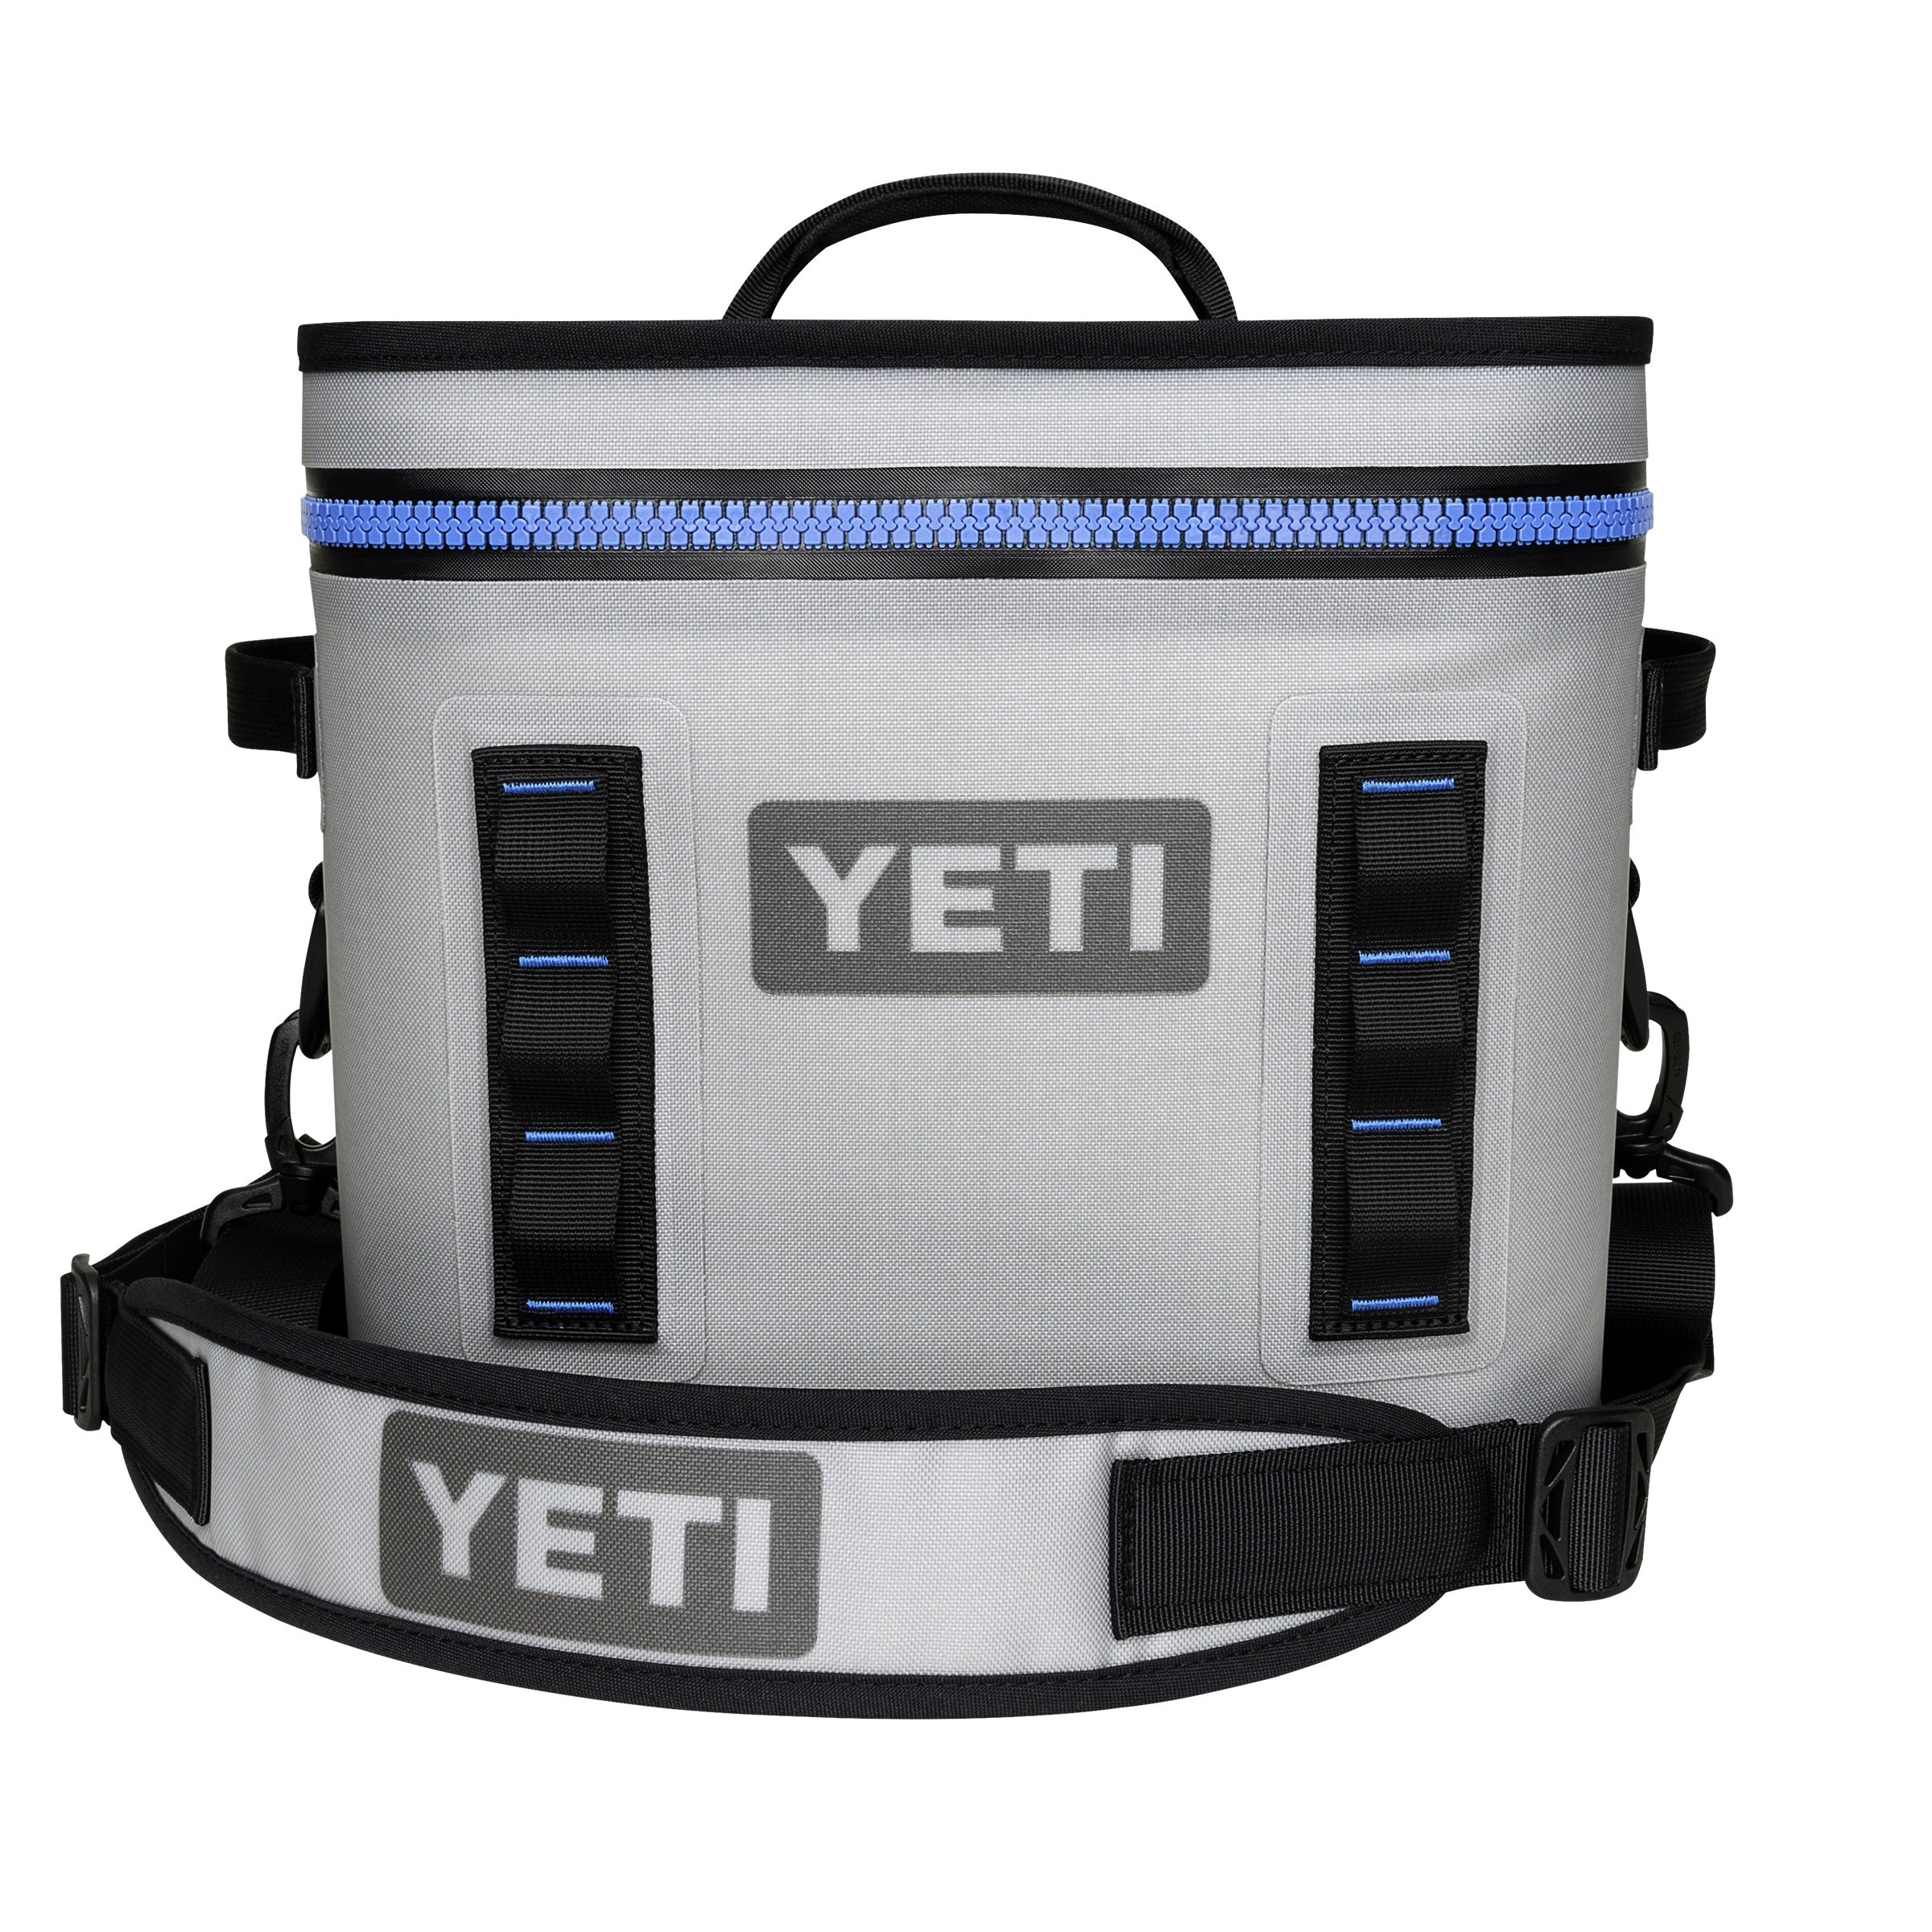 YETI Hopper Flip 12 Portable Cooler with Top Handle, Fog Gray